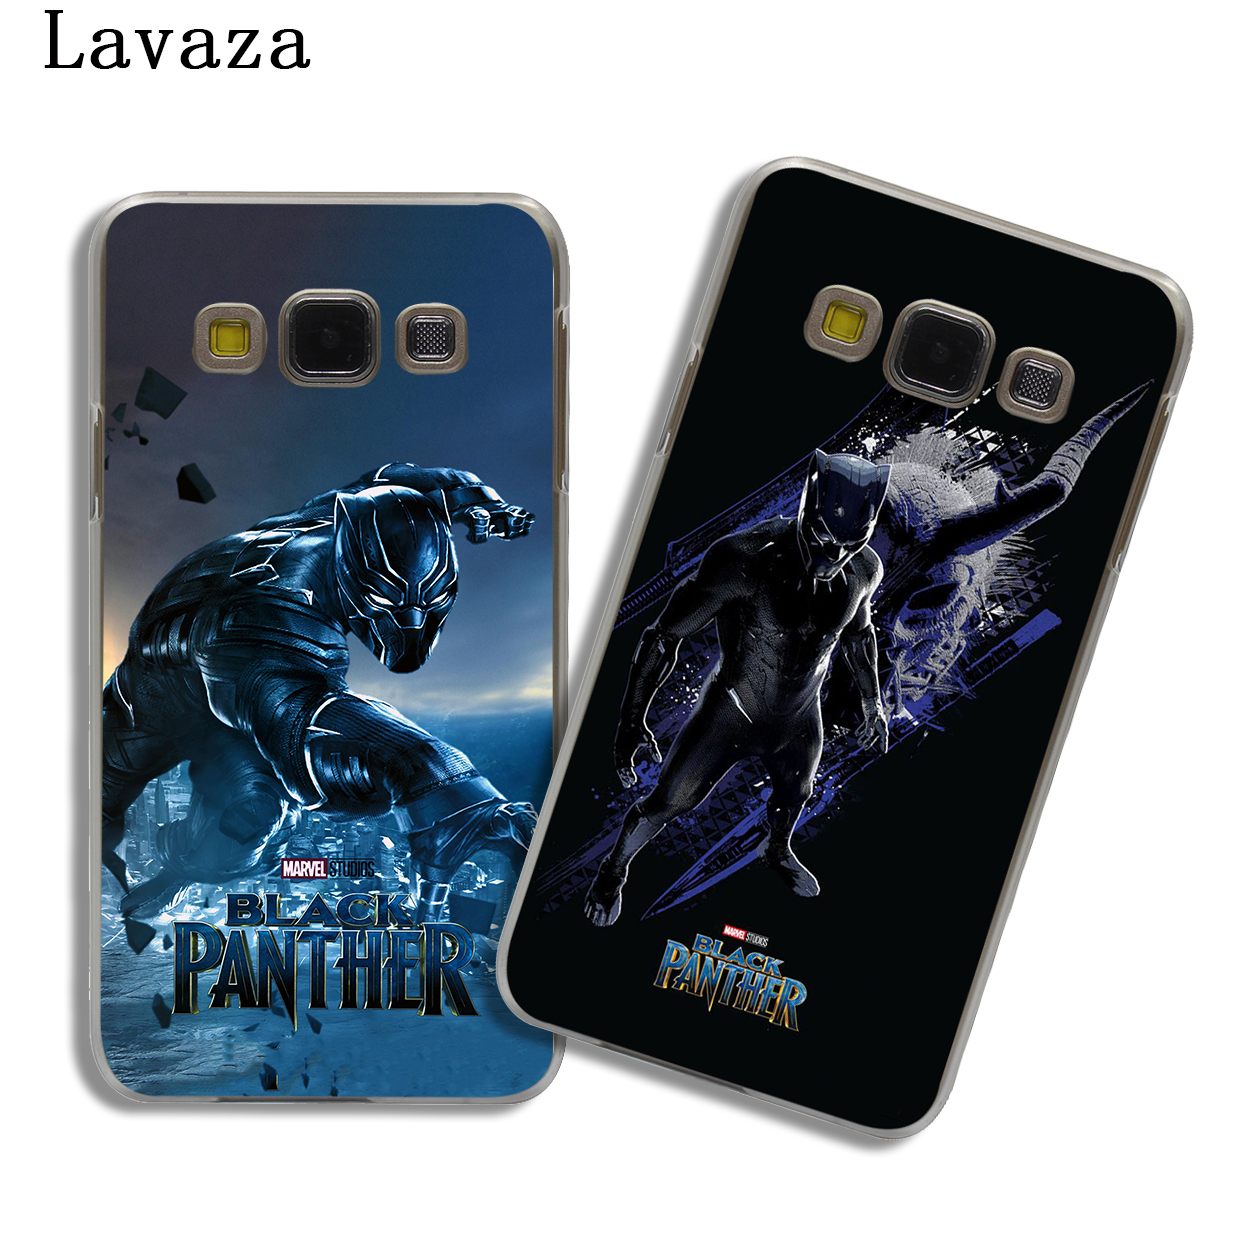 4b7f2dfe310 Lavaza Marvel Comics Black Panther Hard Phone Case Shell for Samsung Galaxy  A3 A5 2017 A9 A8 A6 Plus 2018 Note 8 9 Cover-in Half-wrapped Case from ...